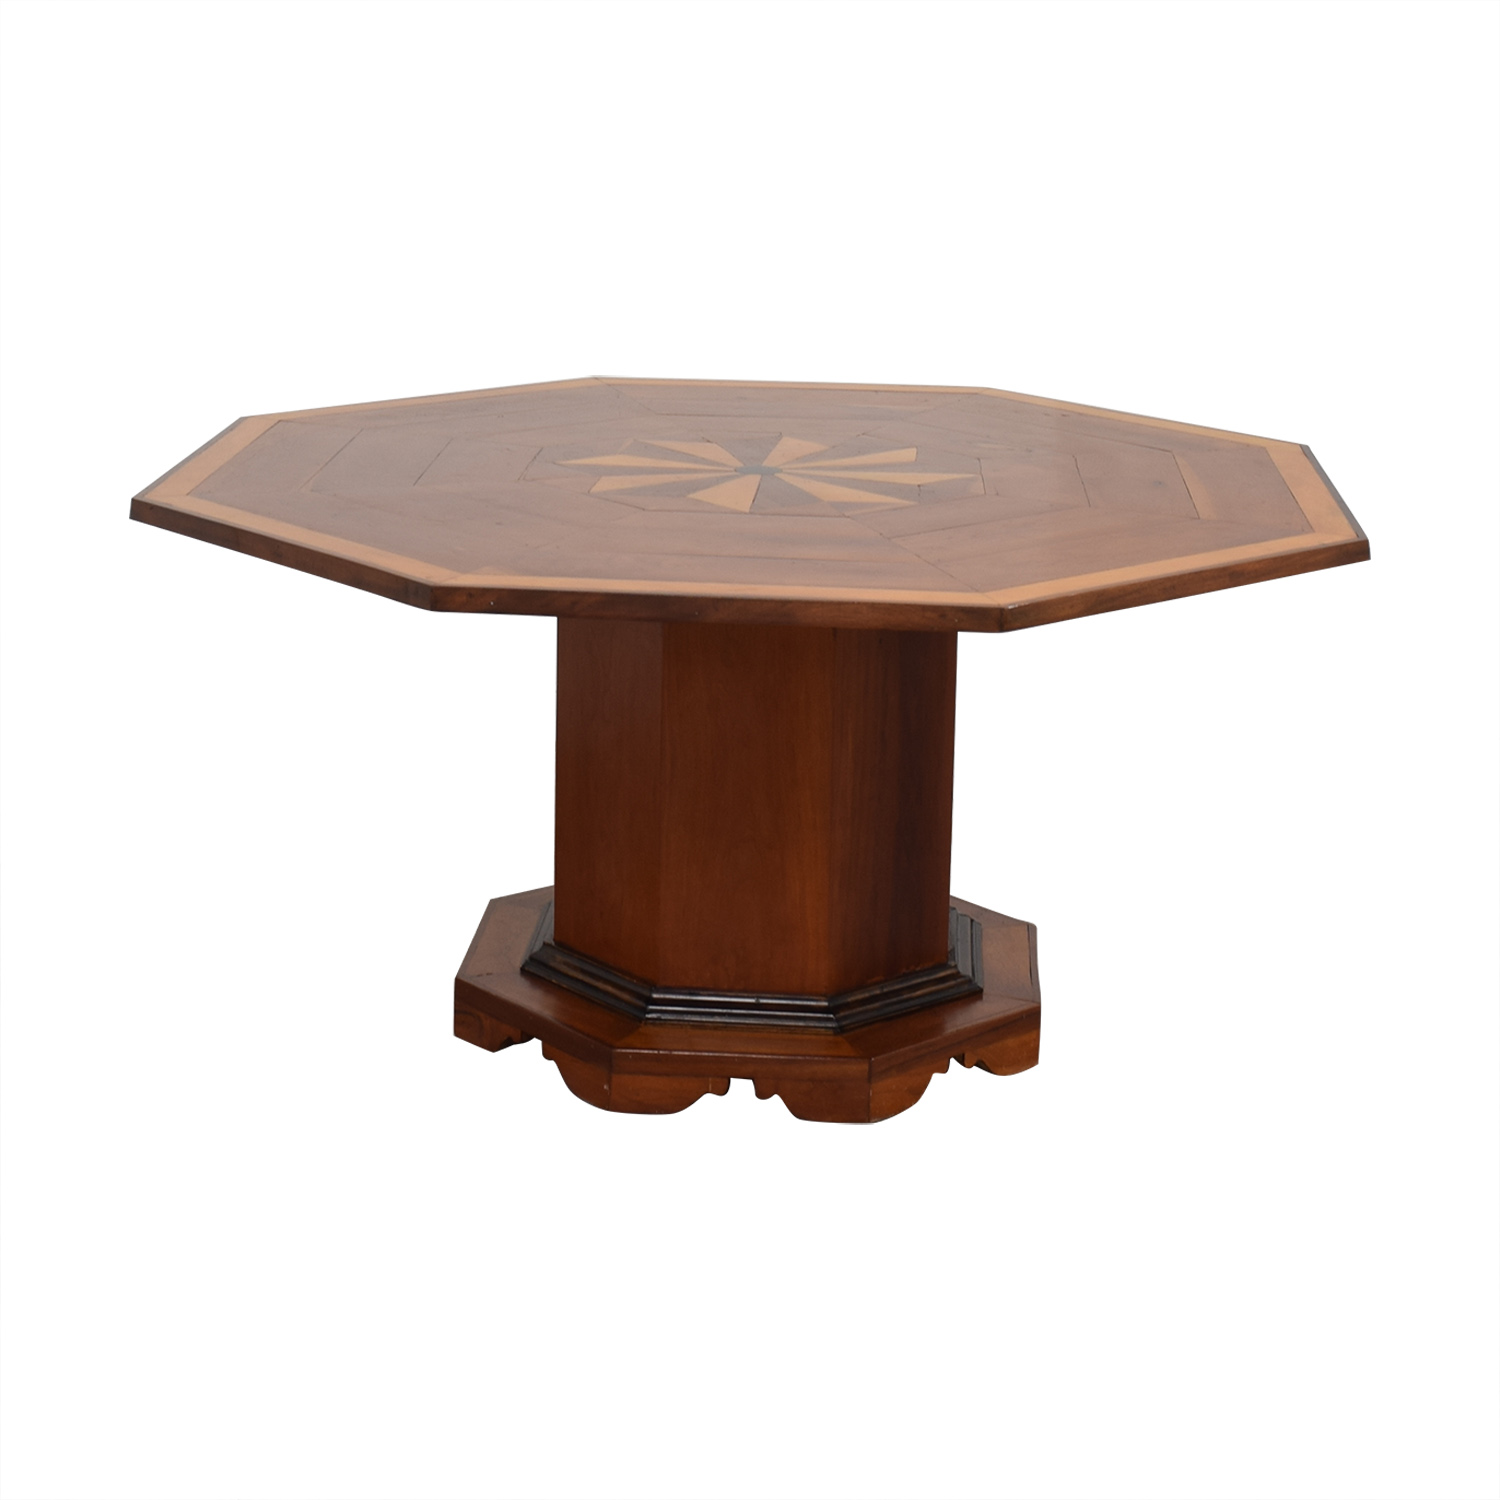 Octagonal Dining Table with Inlay